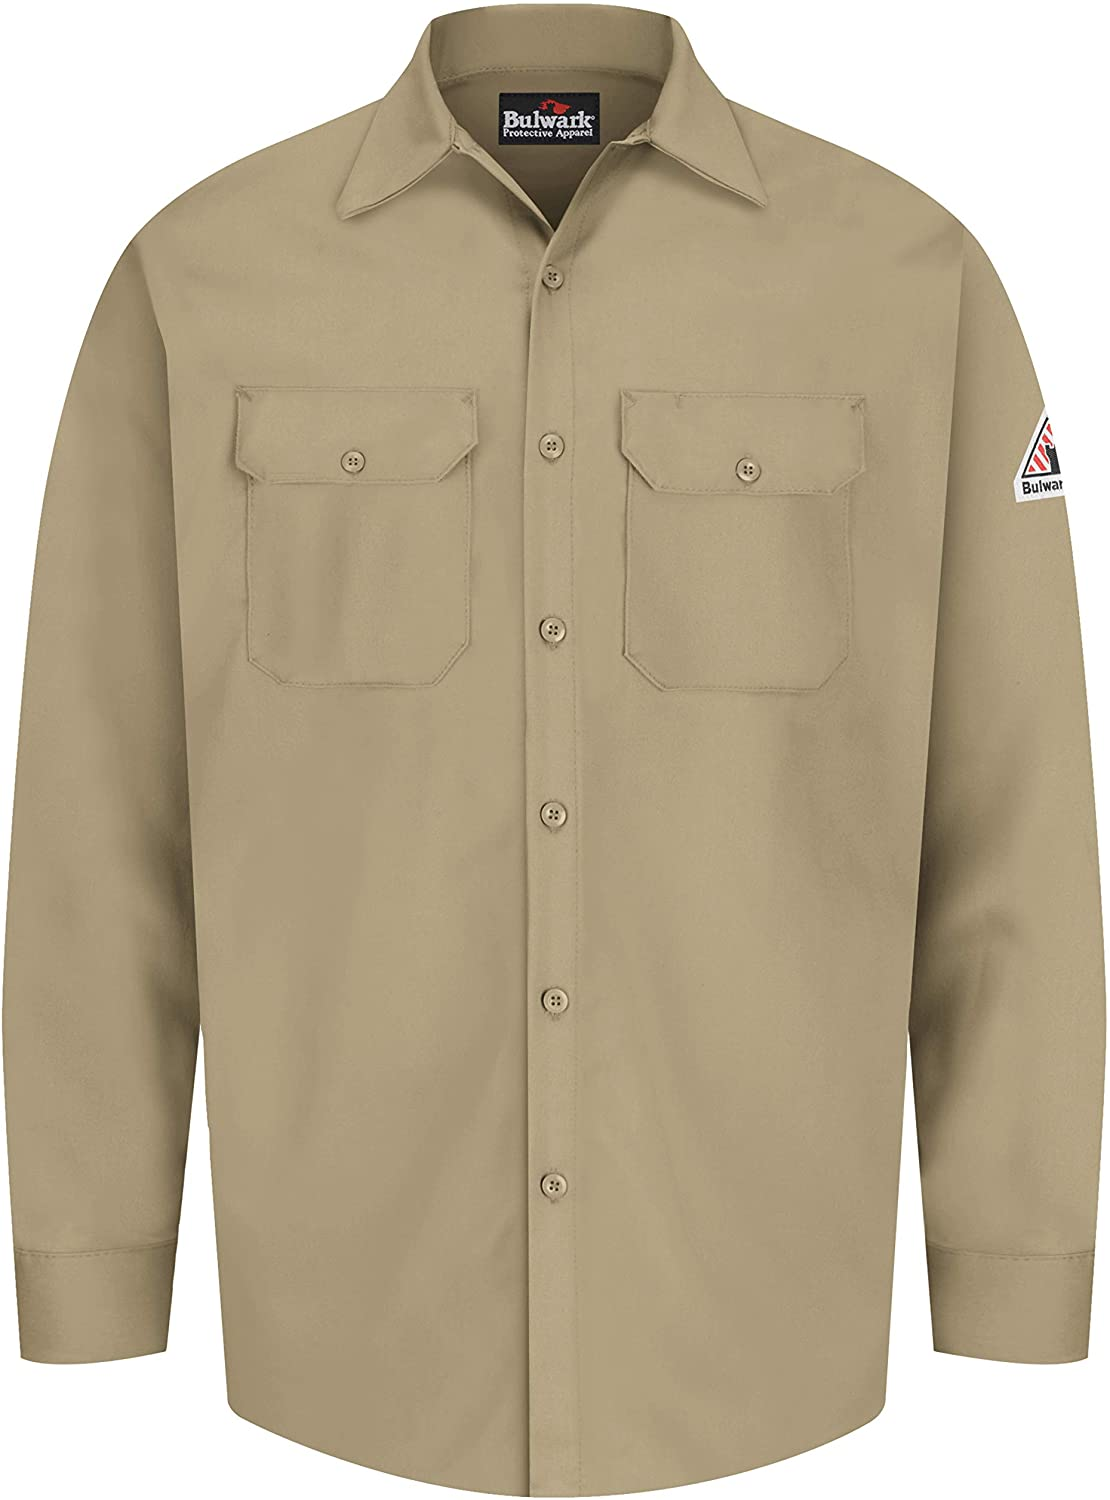 Bulwark Men's Flame Resistant 7 Oz Cotton Work Shirt with Sleeve Vent: Clothing